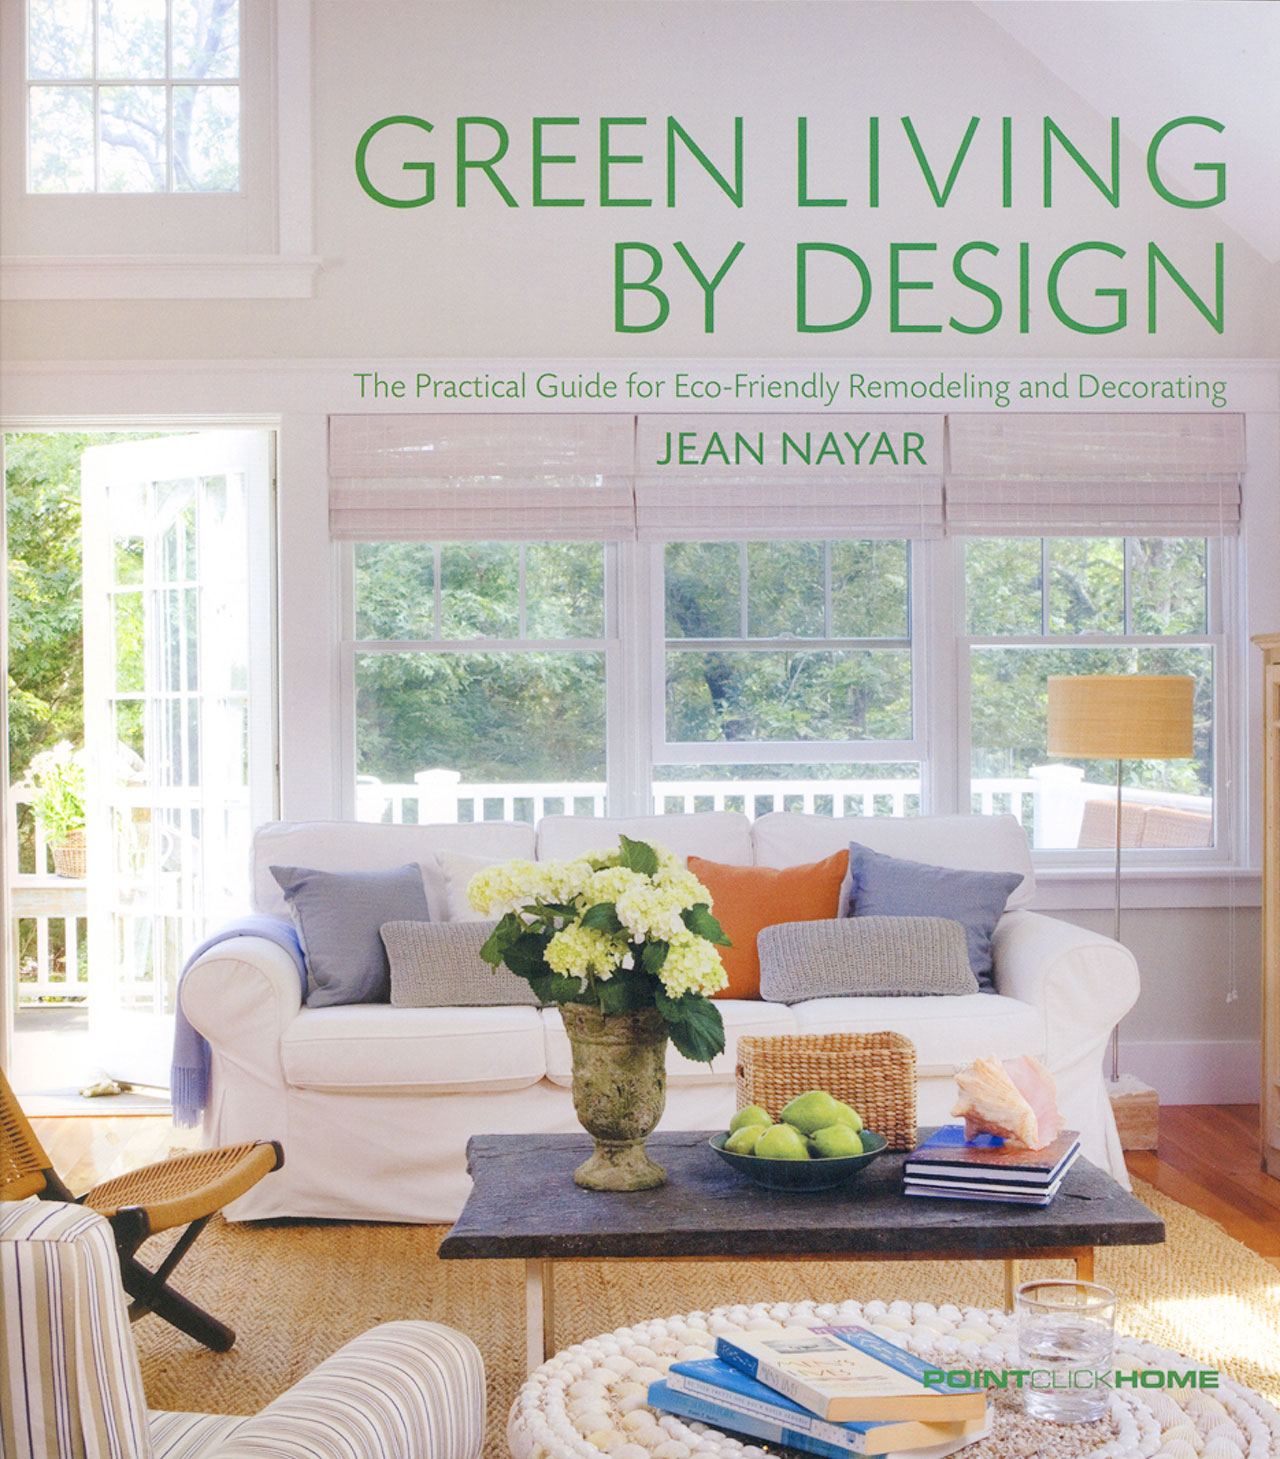 Green Living Room Ideas In East Hampton New York: 06_News_GREEN-LIVING-BY-DESIGN-by-J-Nayar-1_web_w1280